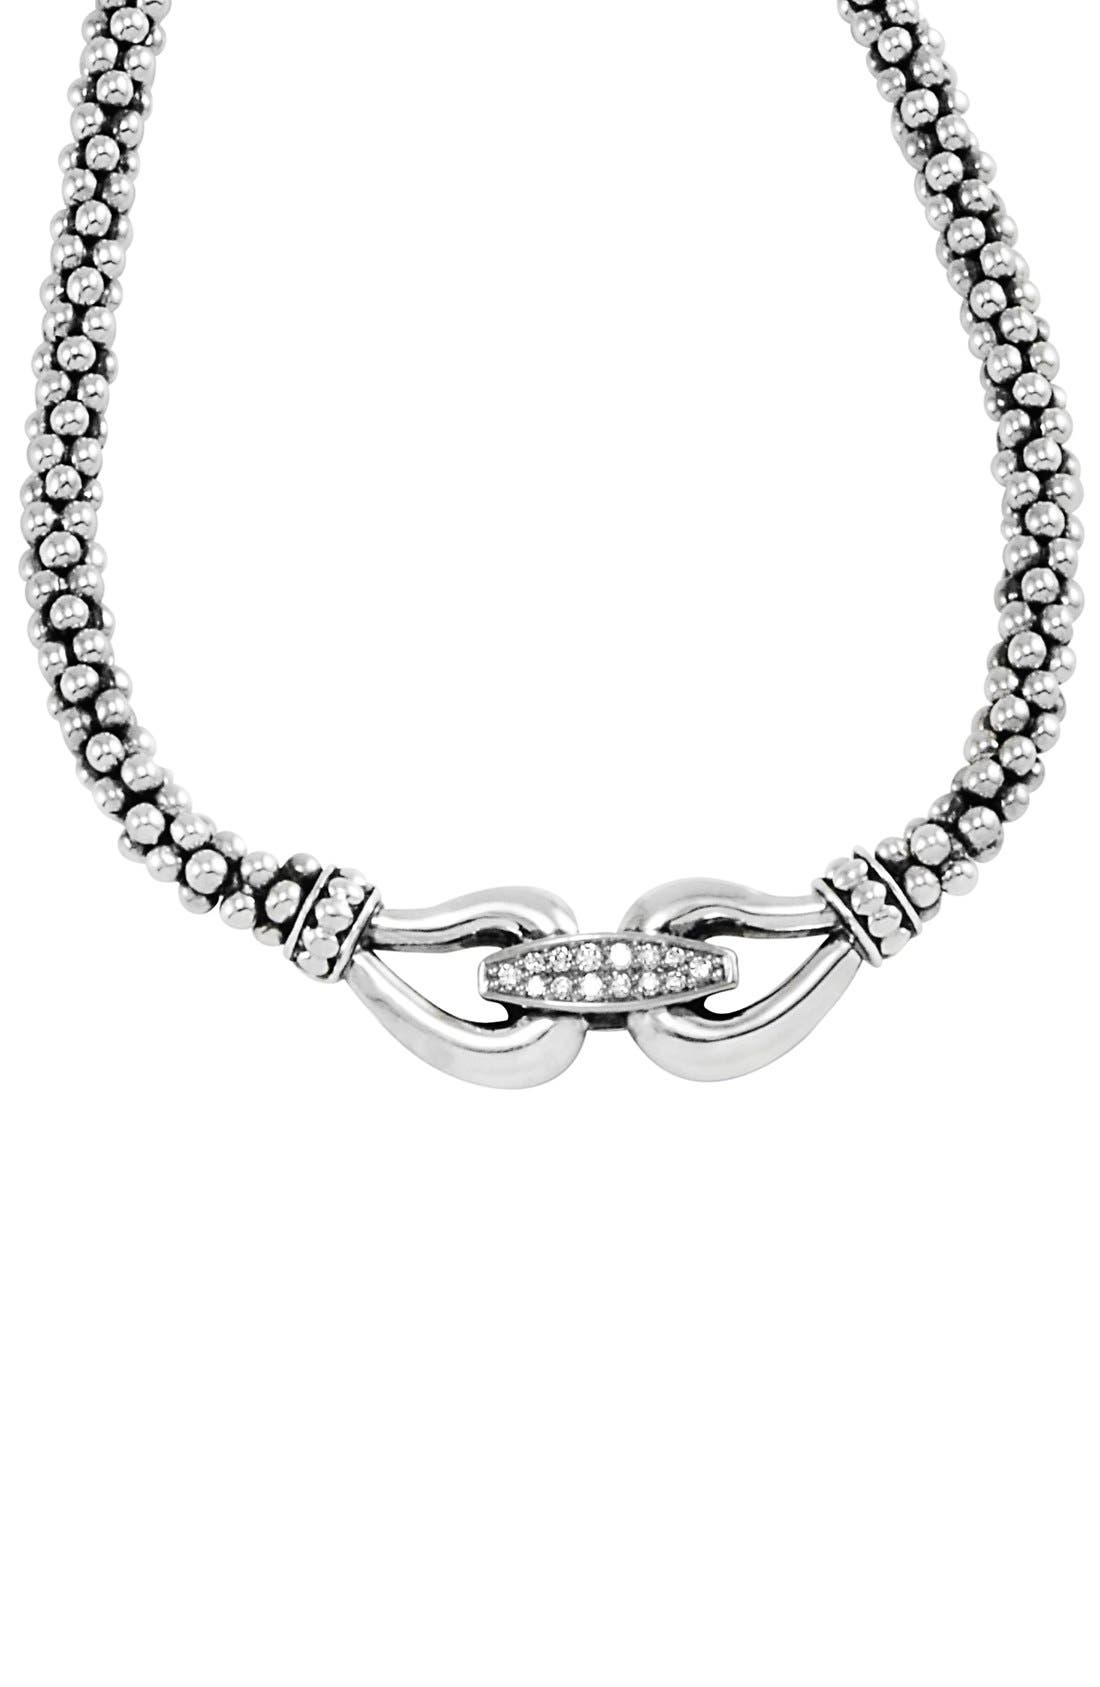 'Derby' Diamond Buckle Rope Necklace,                             Alternate thumbnail 3, color,                             040